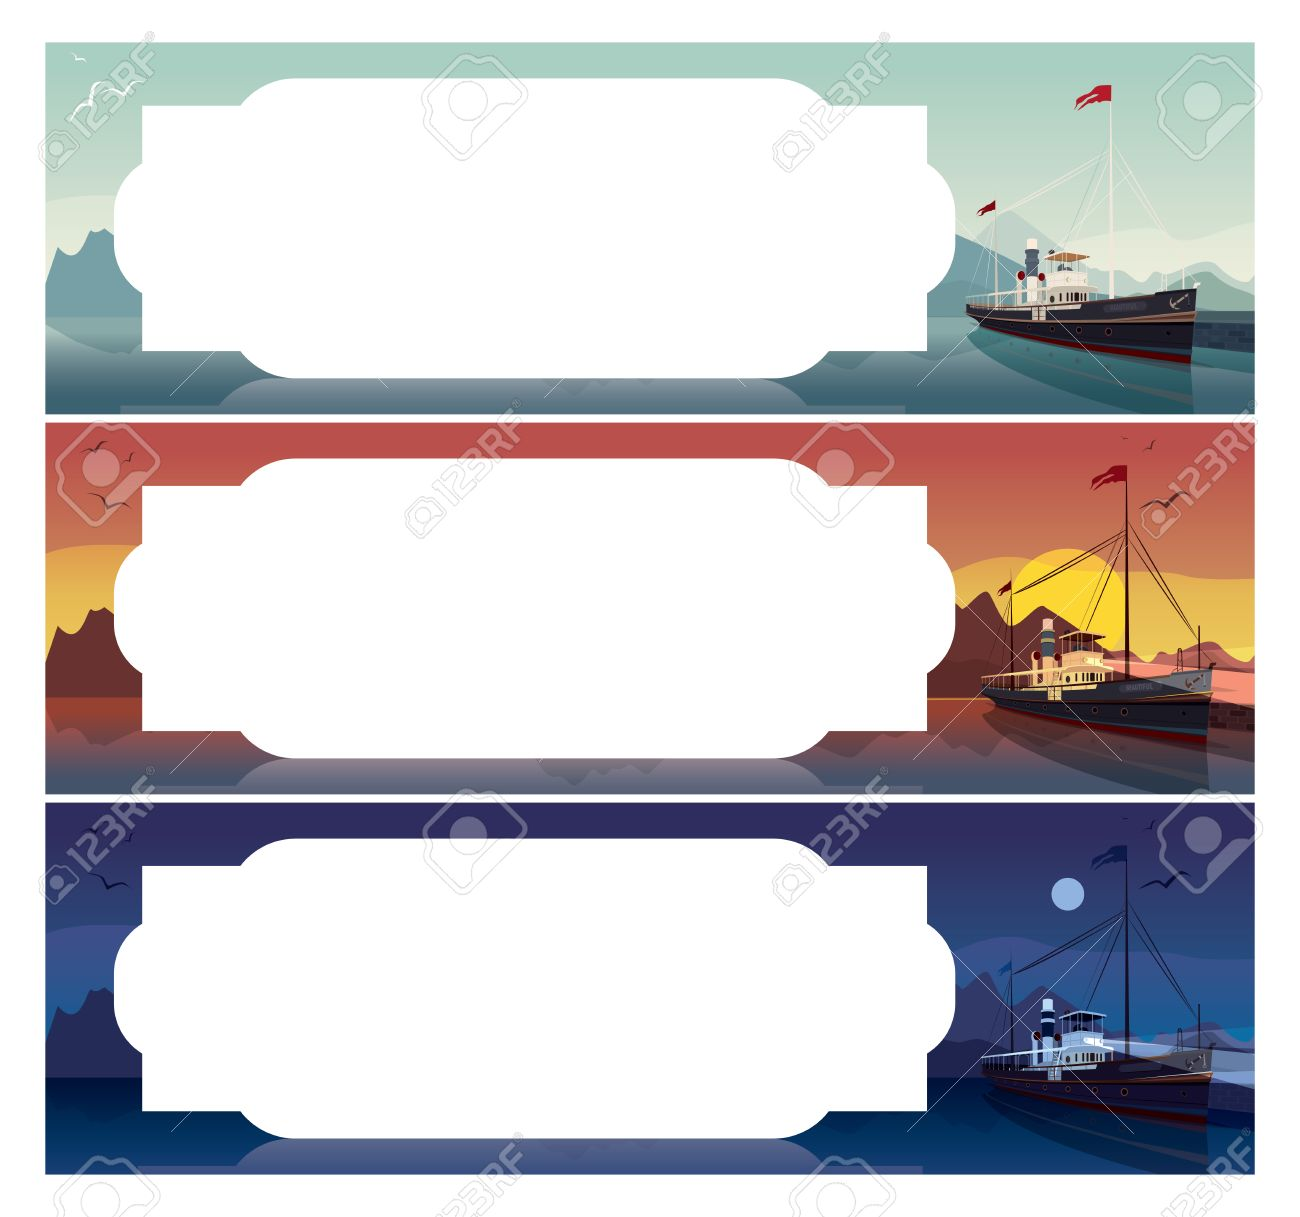 Set Of Horizontal Templates For Sea Cruise Tickets Or Flyers